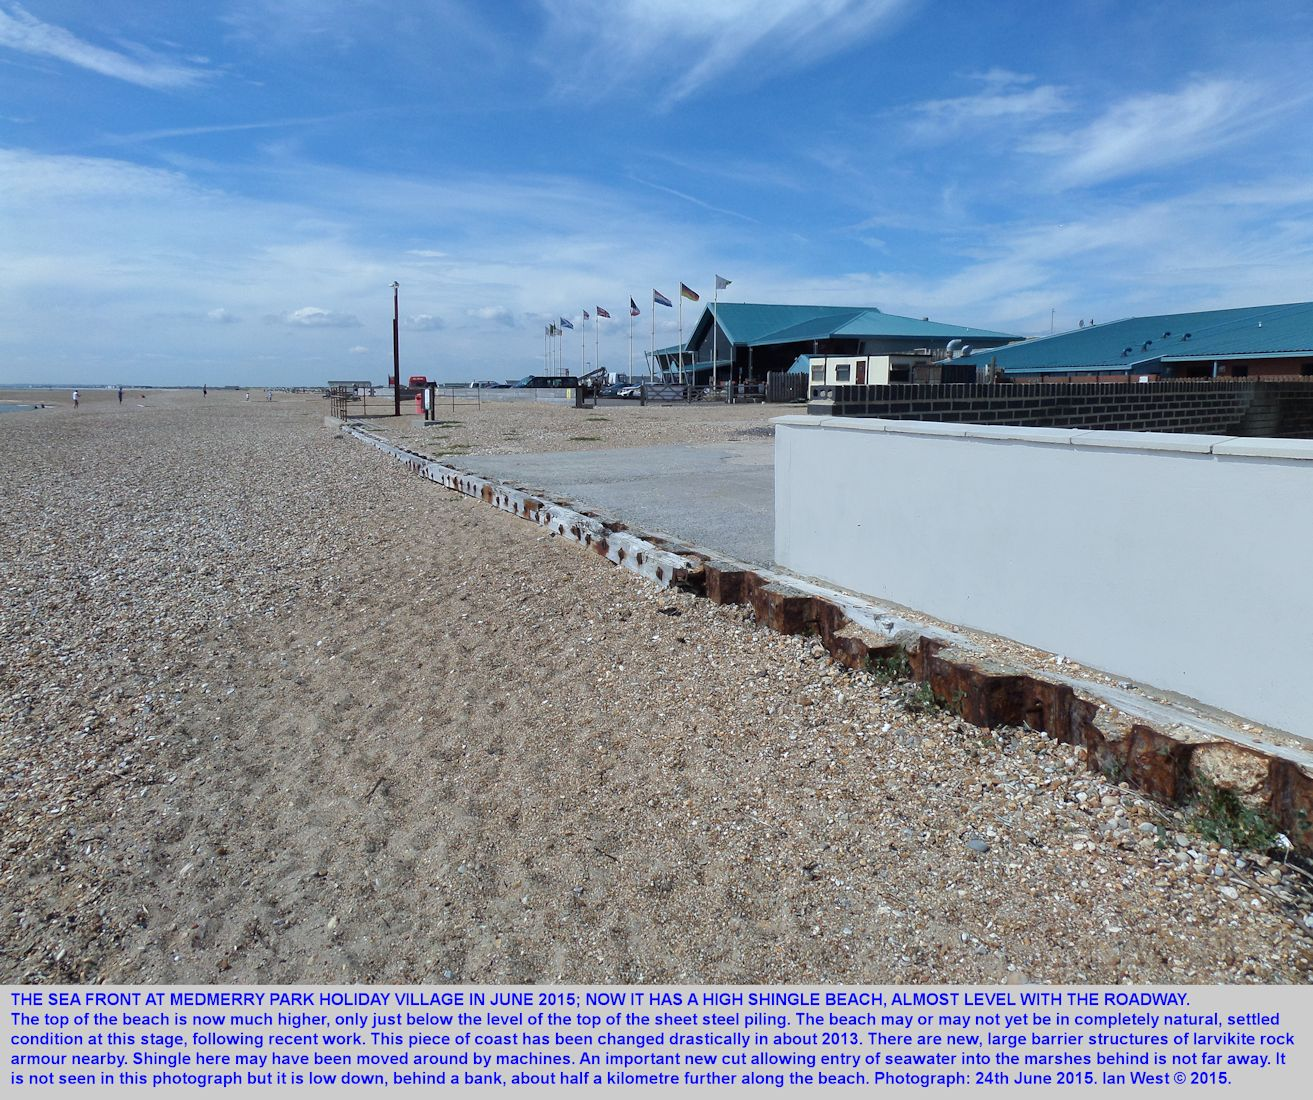 The top of the beach at Medmerry Park Holiday Village, Bracklesham Bay, Sussex, near Selsey Bill, 24th June 2015